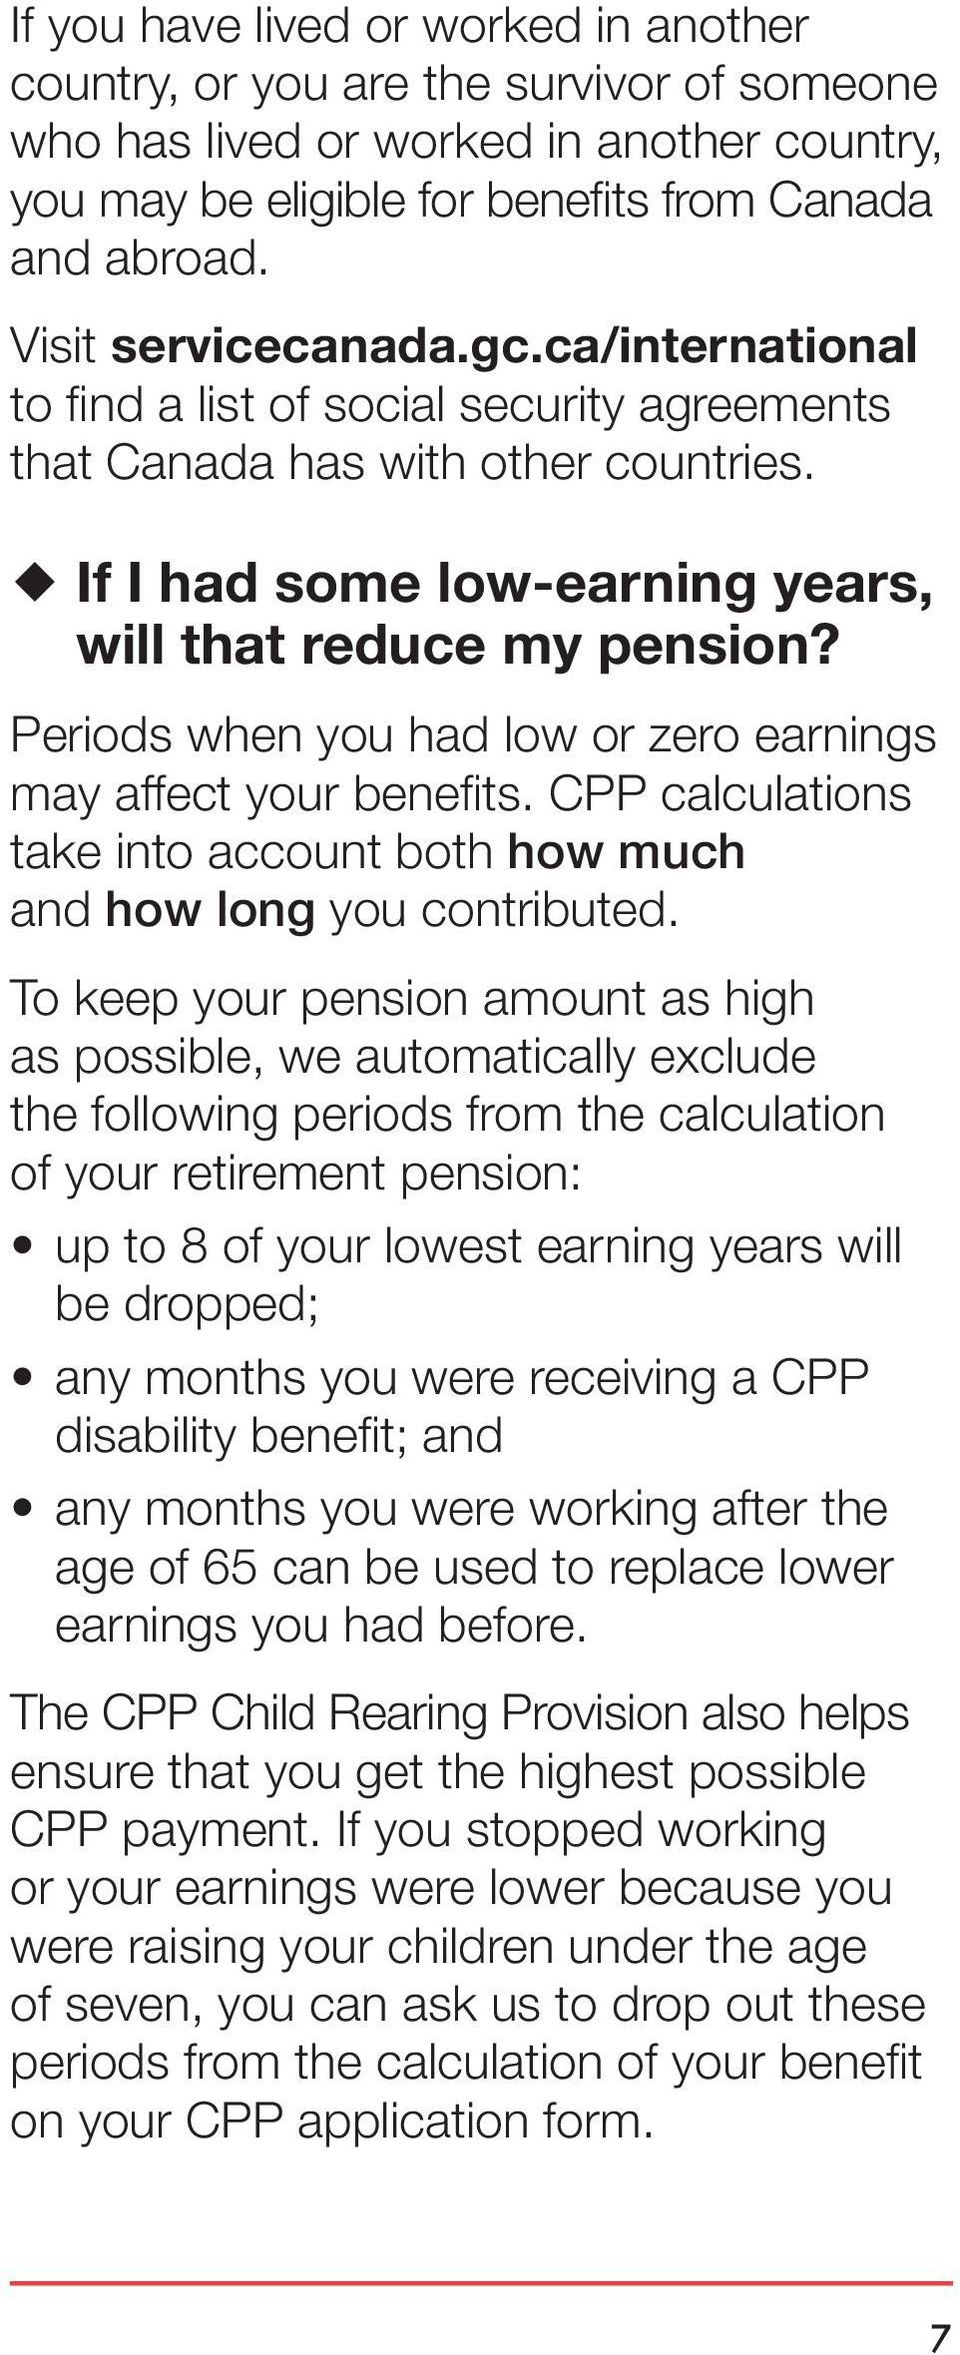 Periods when you had low or zero earnings may affect your benefits. CPP calculations take into account both how much and how long you contributed.